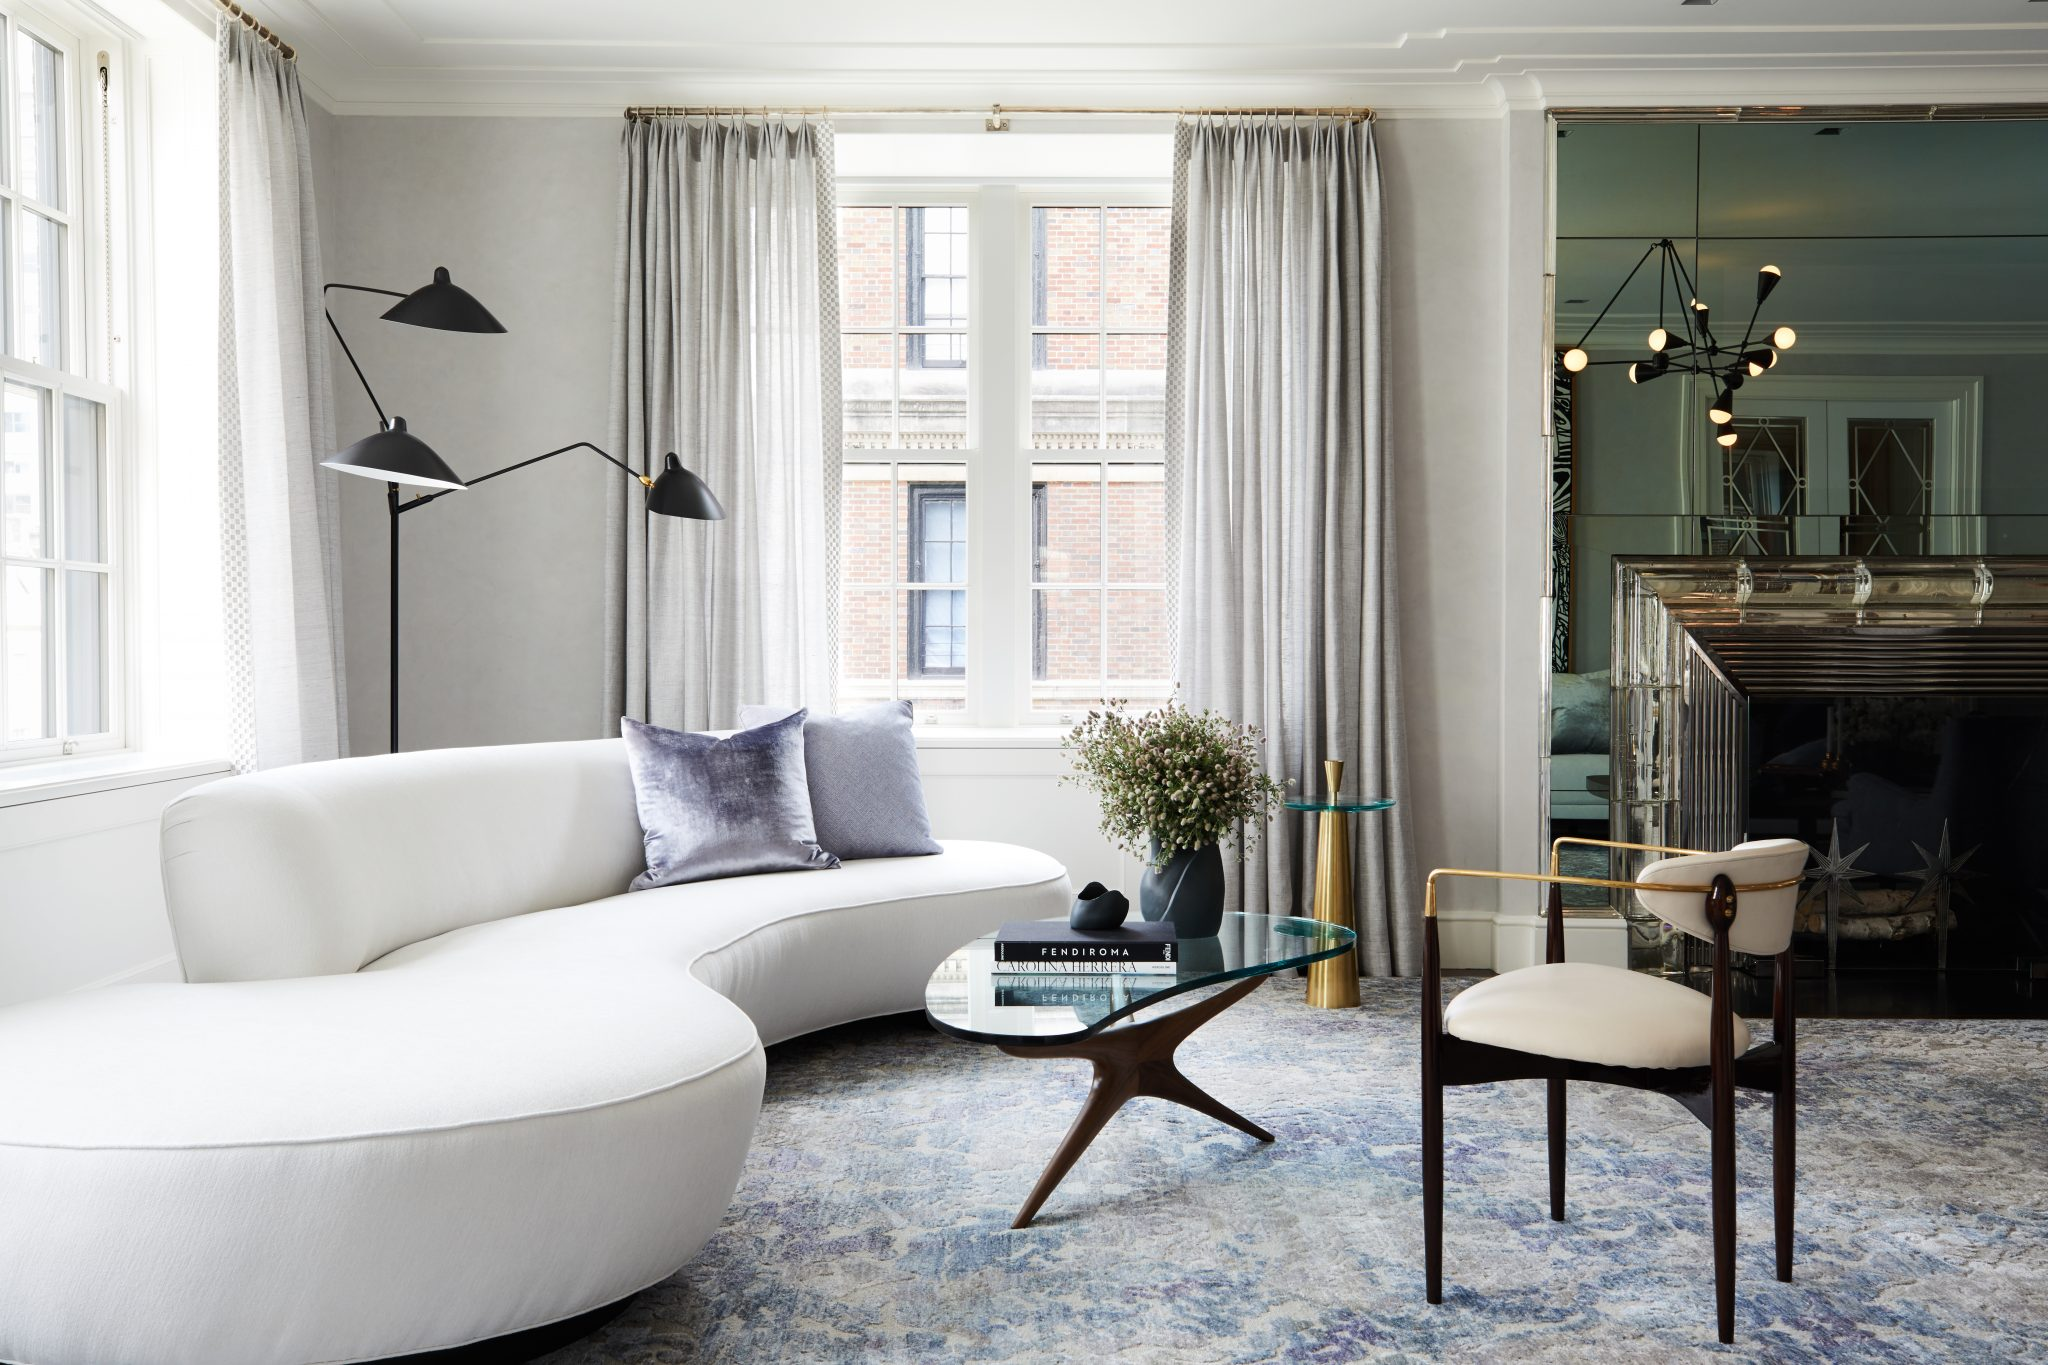 12 Picturesque Small Living Room Design: Classic Contemporary Park Avenue Apartment